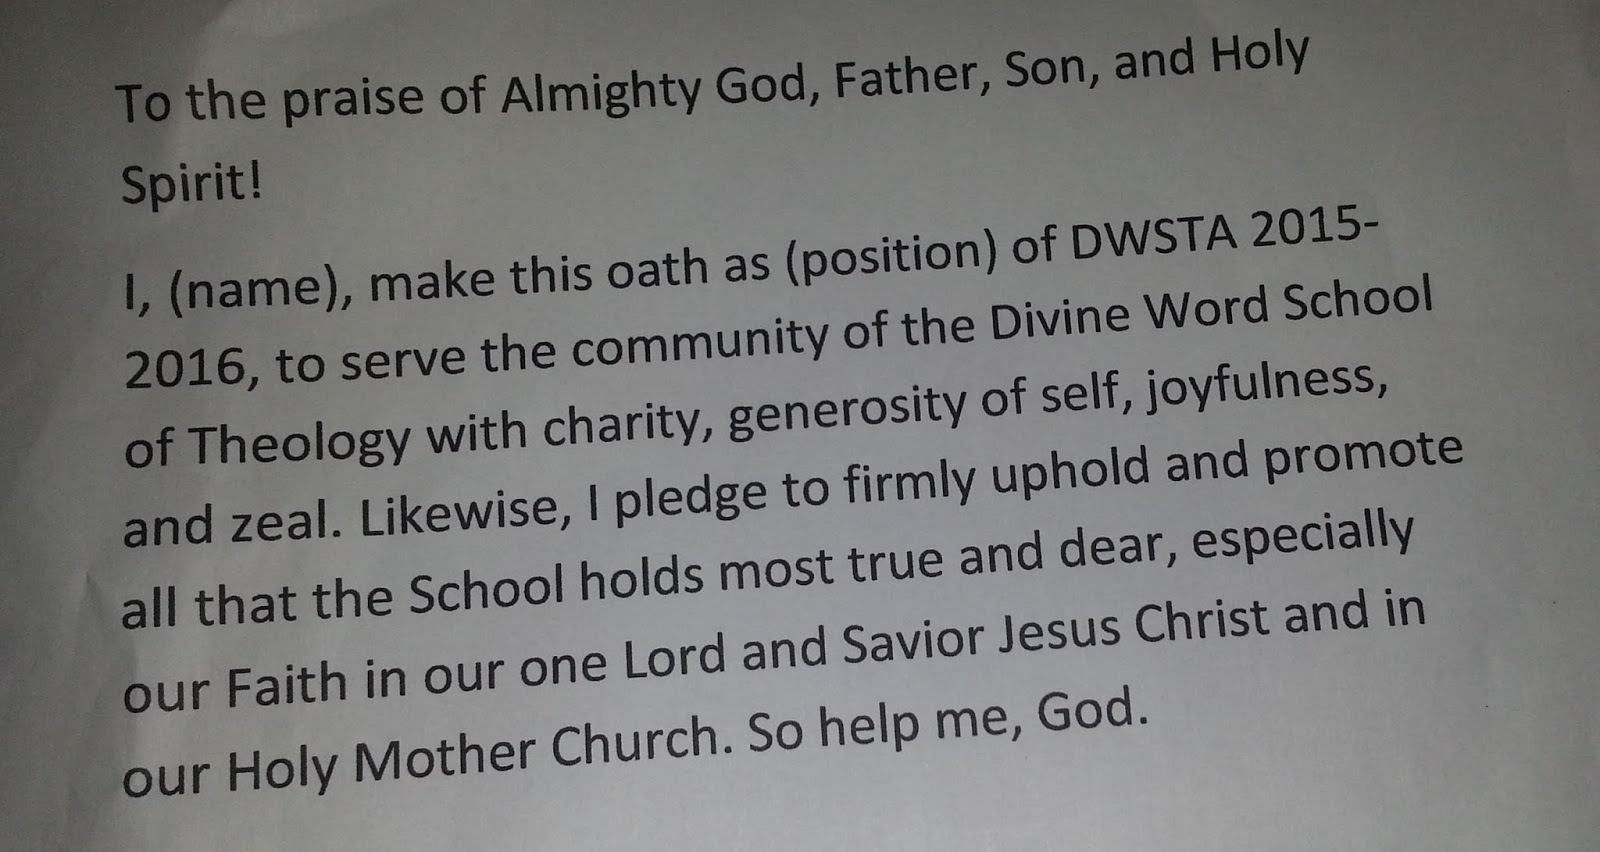 Divine Word Seminary DWSTA Oathtaking – Oath of Office Template